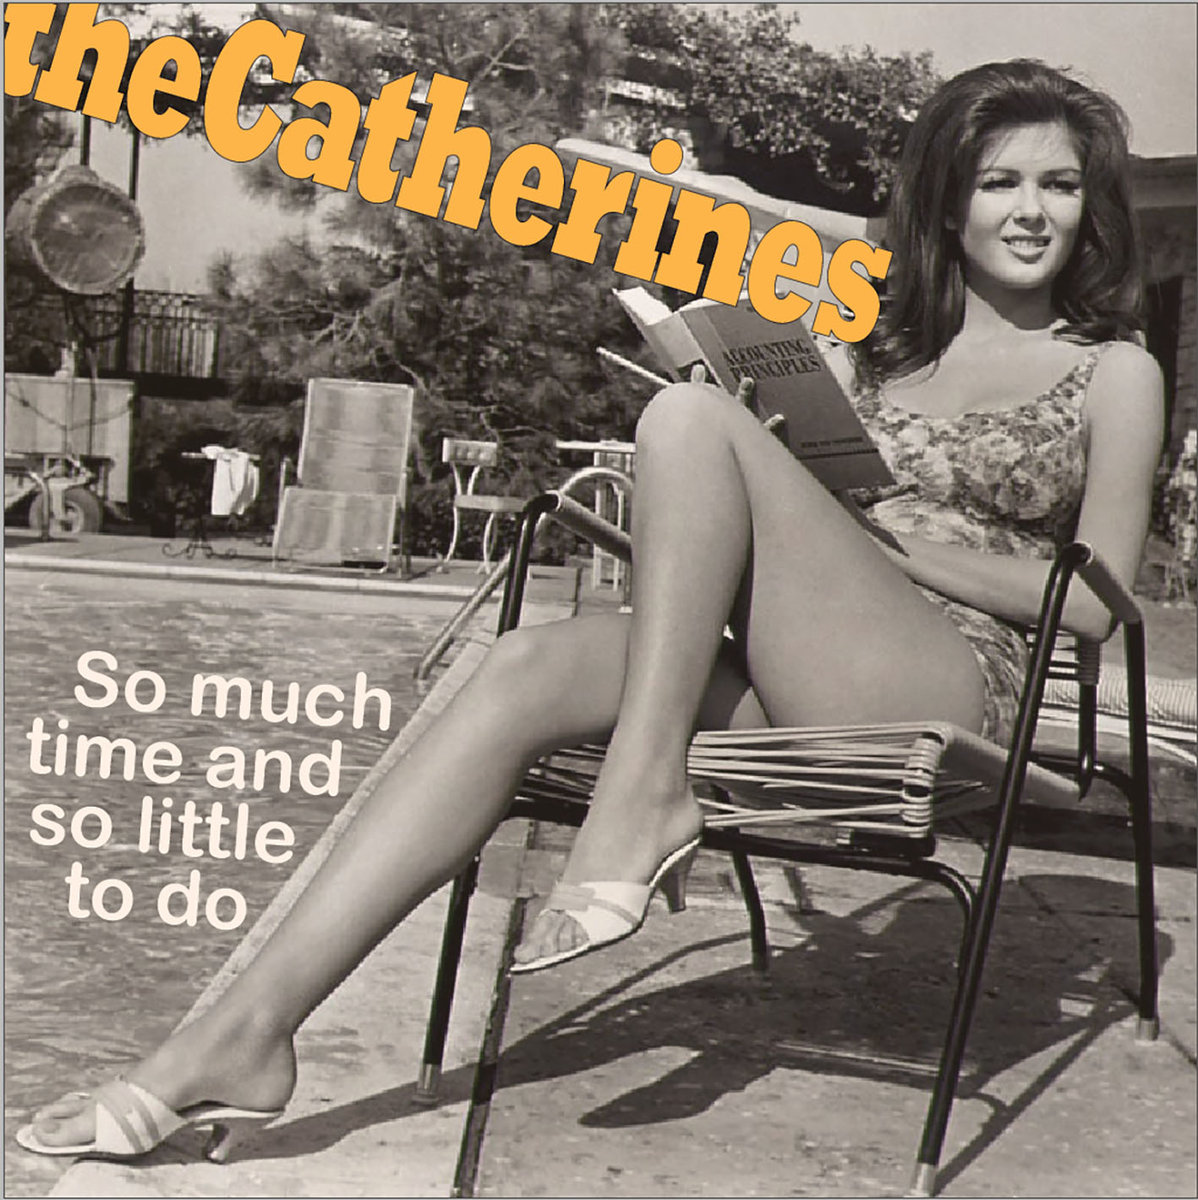 theCatherines – So much time and so little to do